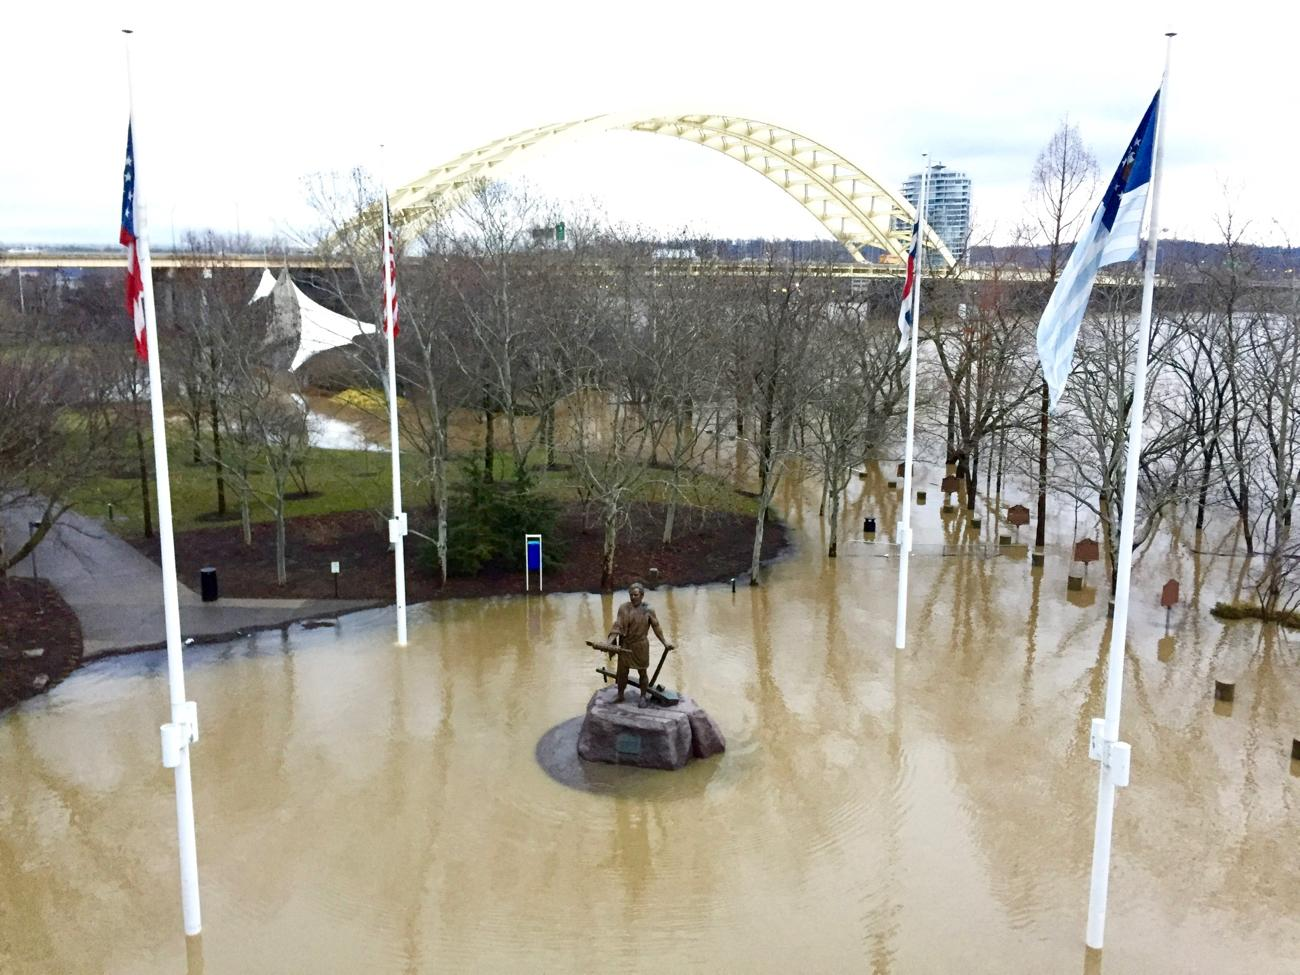 Taken on Friday (Feb. 23), the Cincinnatus Statue at Sawyer Point had formed its own island due to the rising flood waters. / Image: Leah Zipperstein, Cincinnati Refined // Published: 2.26.18